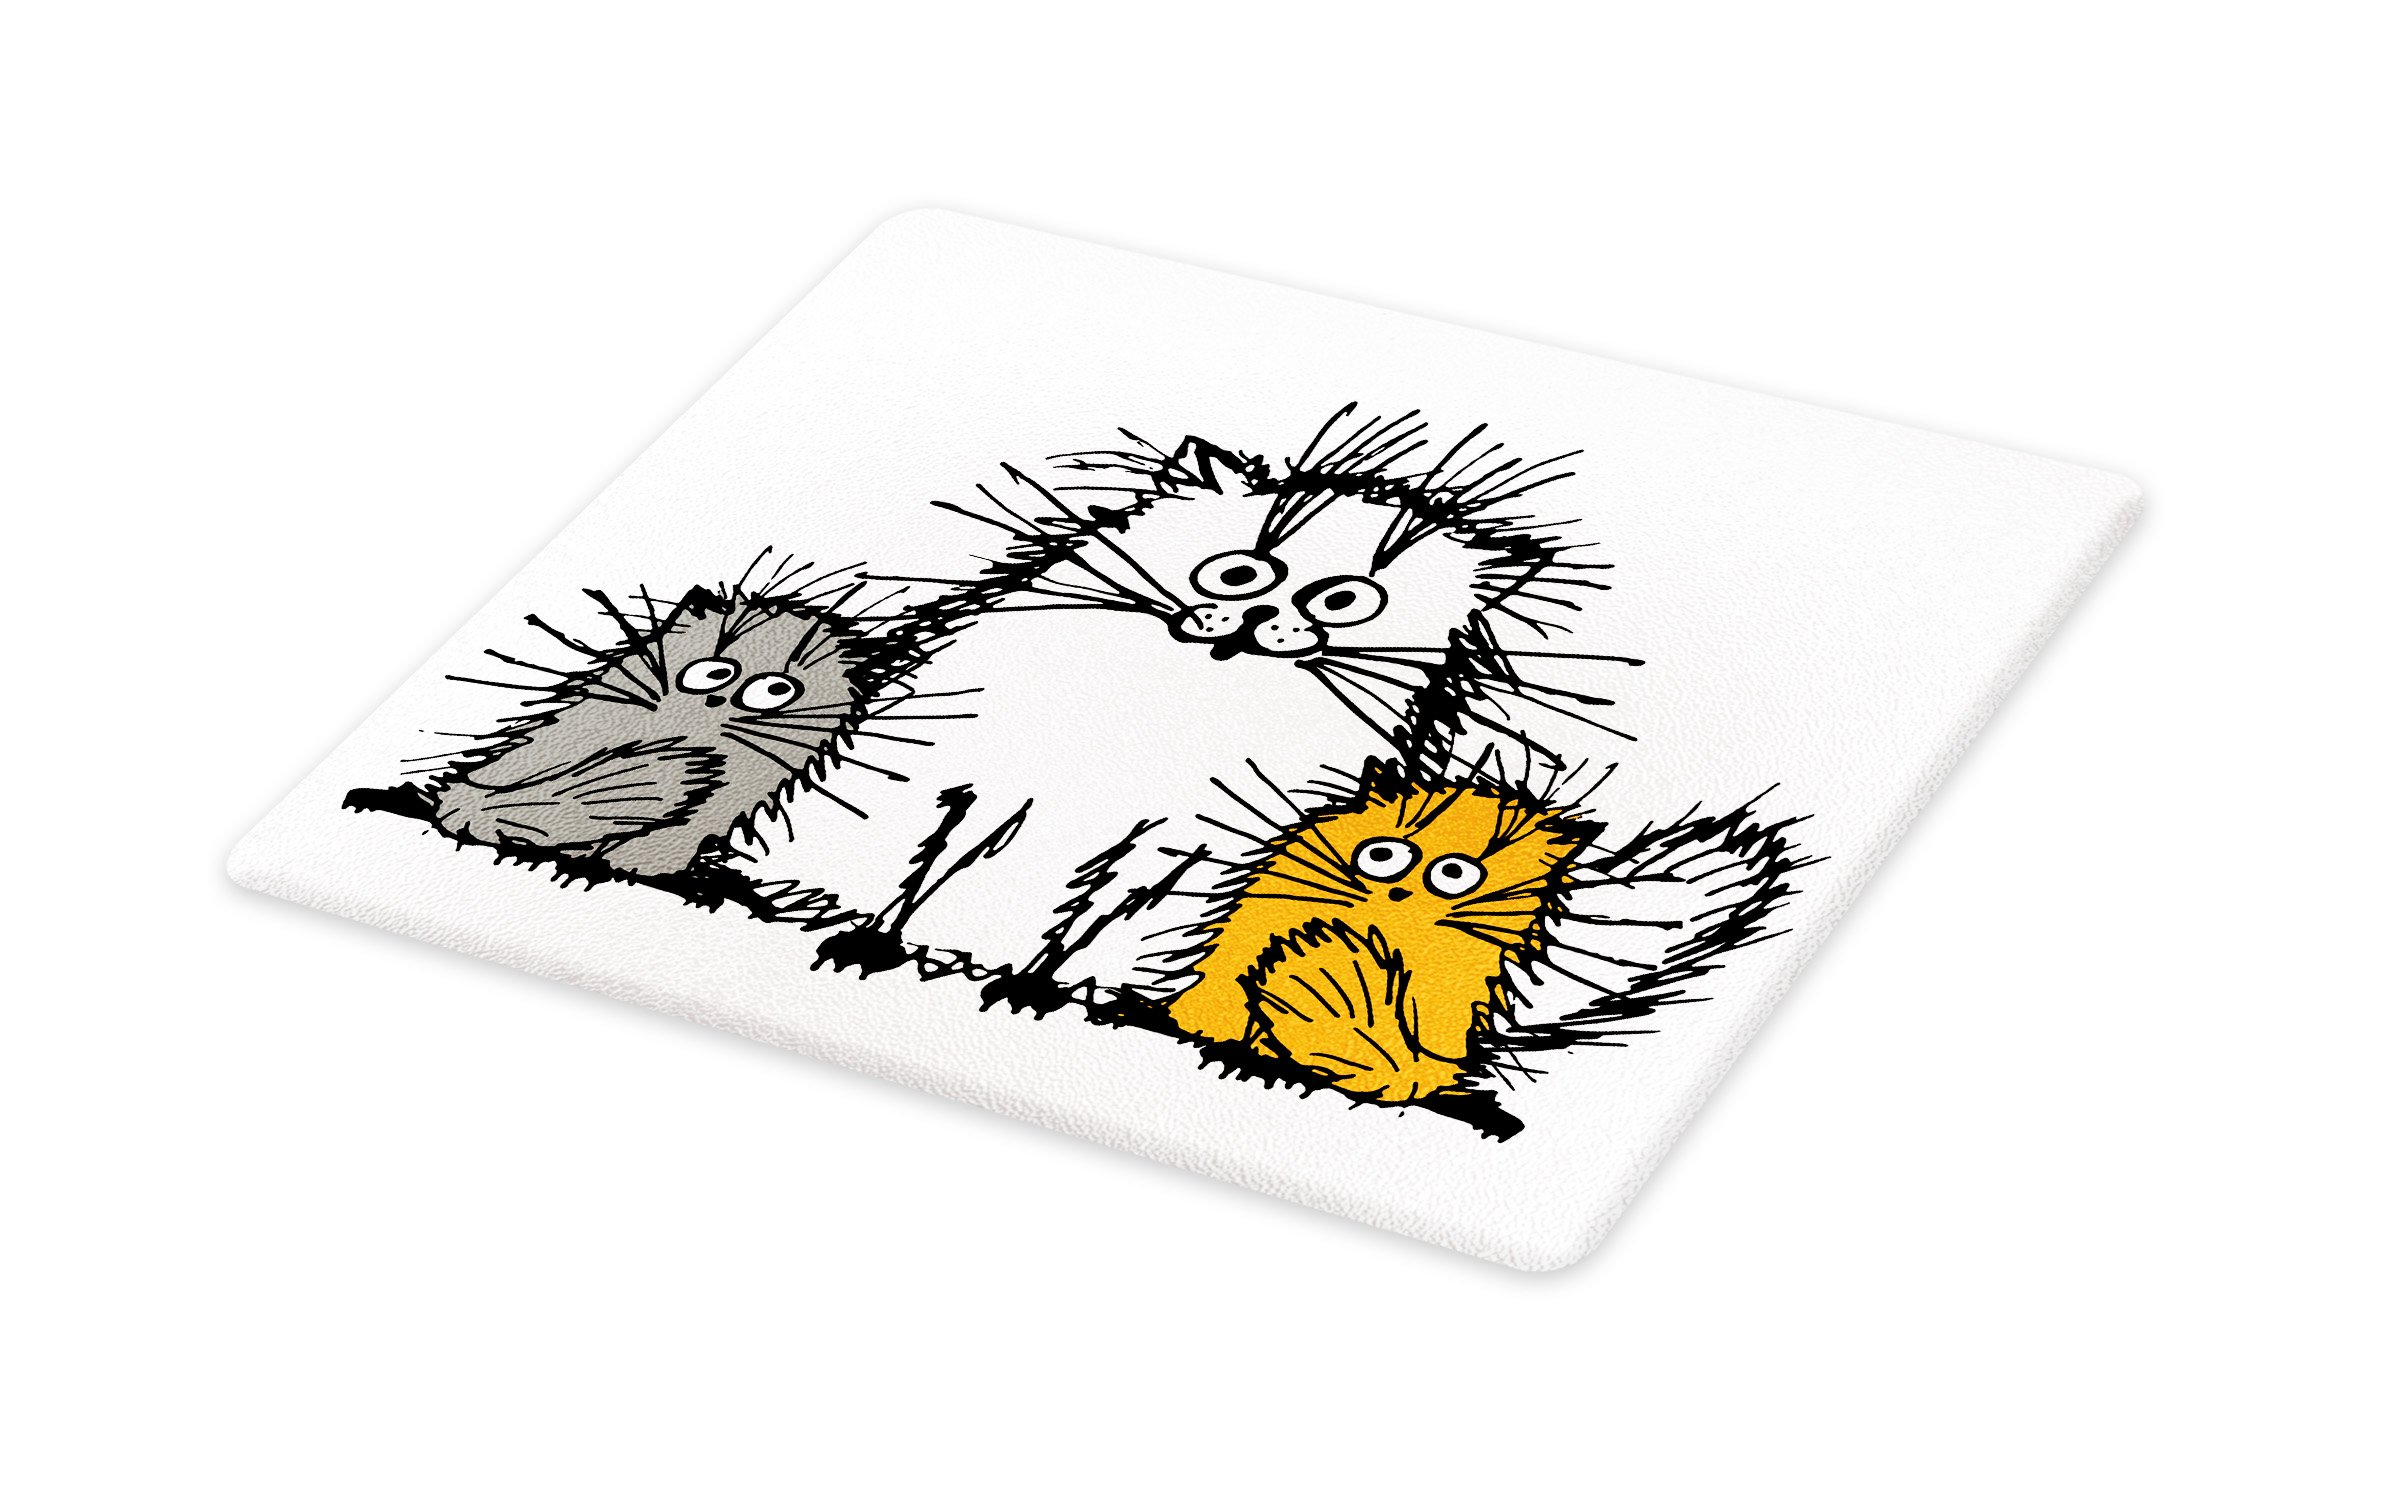 Lunarable Sketchy Cutting Board, Cute Fluffy Cat Family with Mother Babies Feline Animal Humor Illustration, Decorative Tempered Glass Cutting and Serving Board, Small Size, Orange White Grey